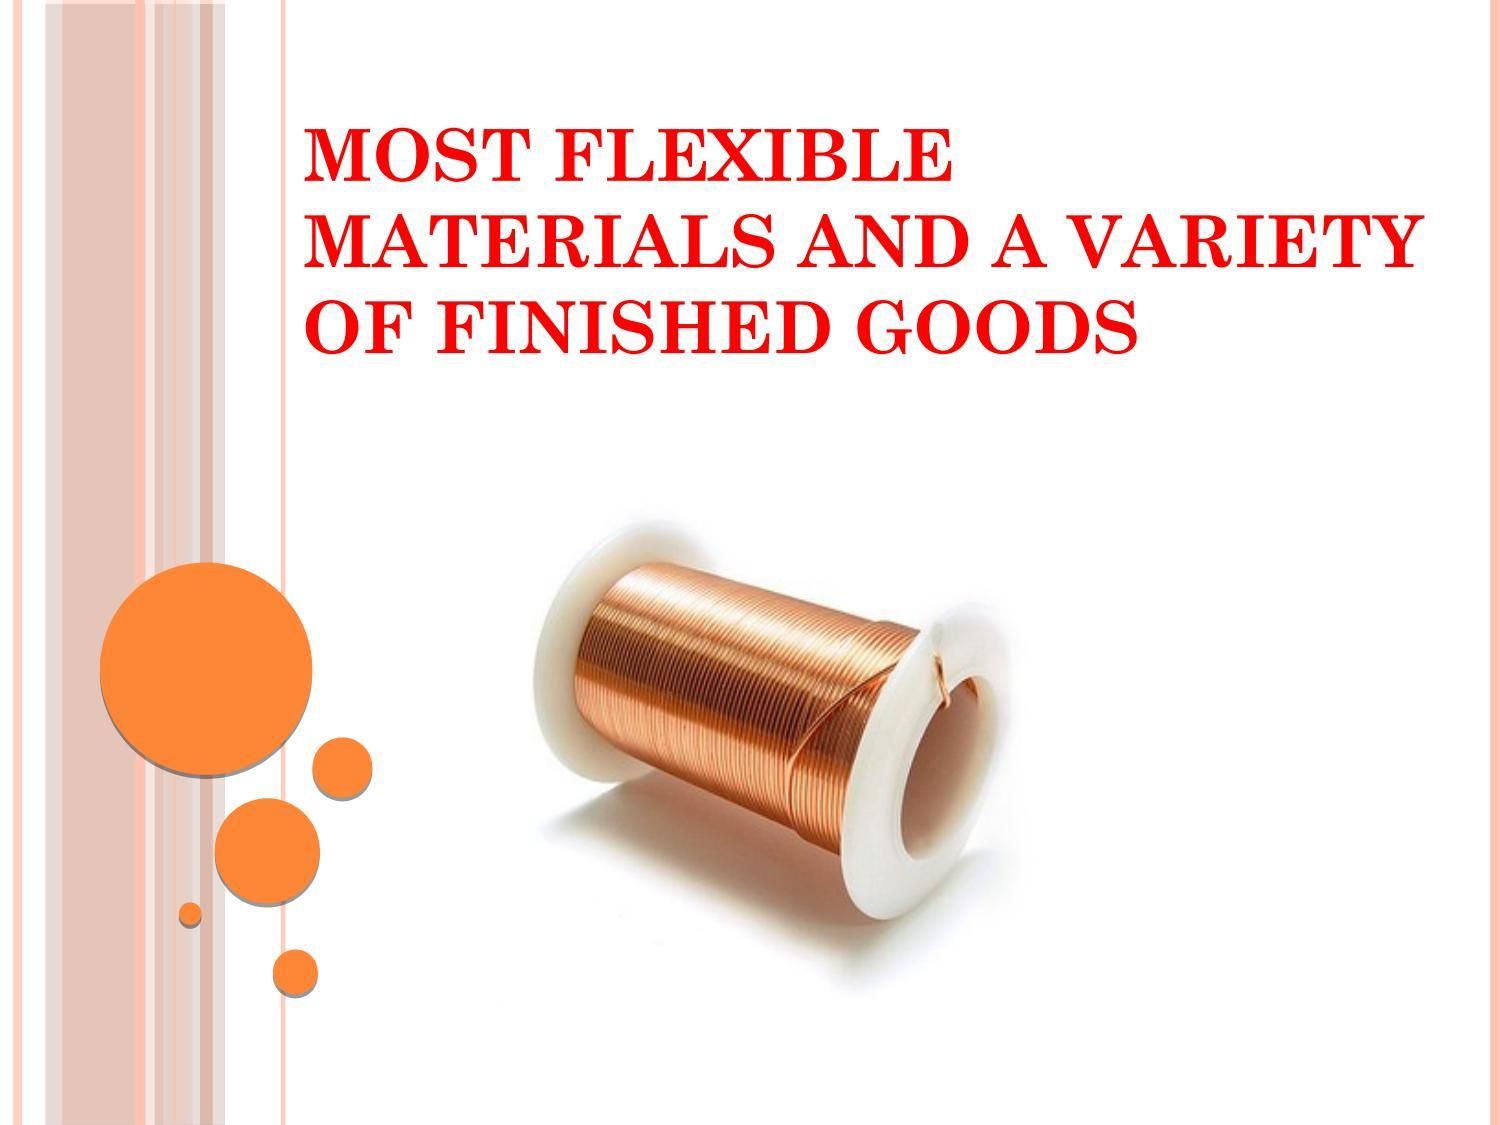 Most flexible materials and a variety of finished goods